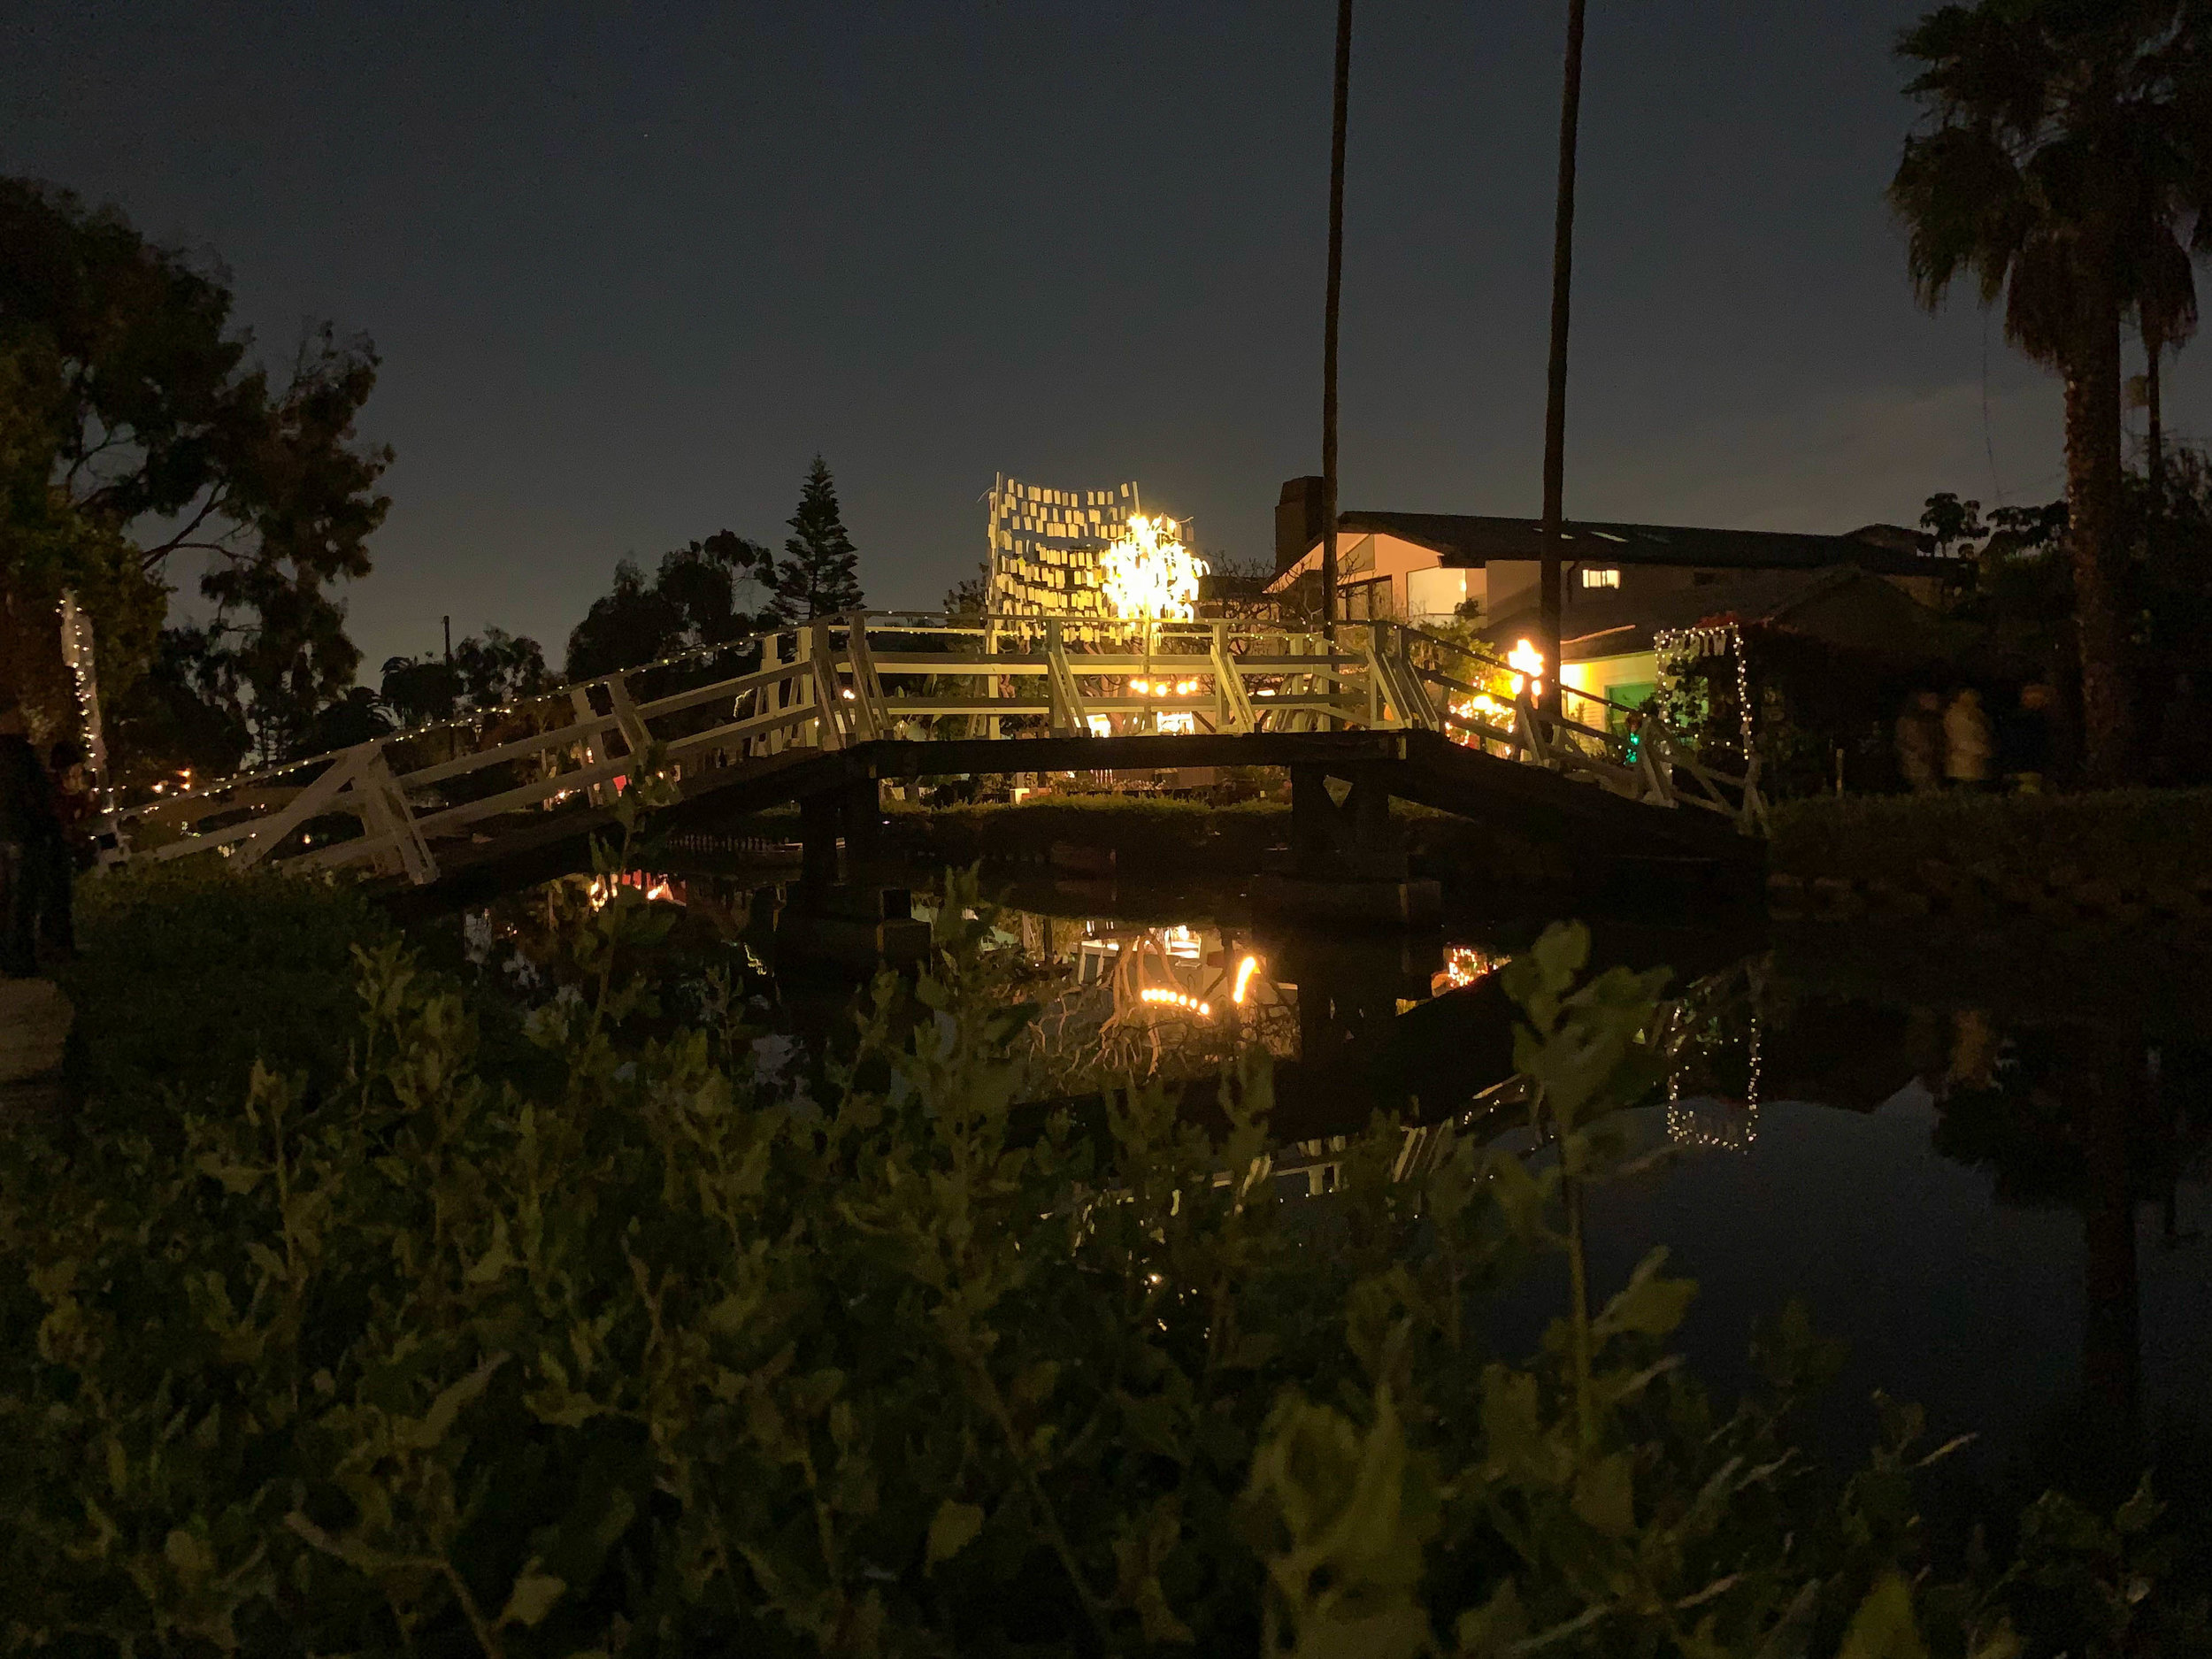 Christmas Lights in Los Angeles Venice Canals - Bridge Decorations Wish